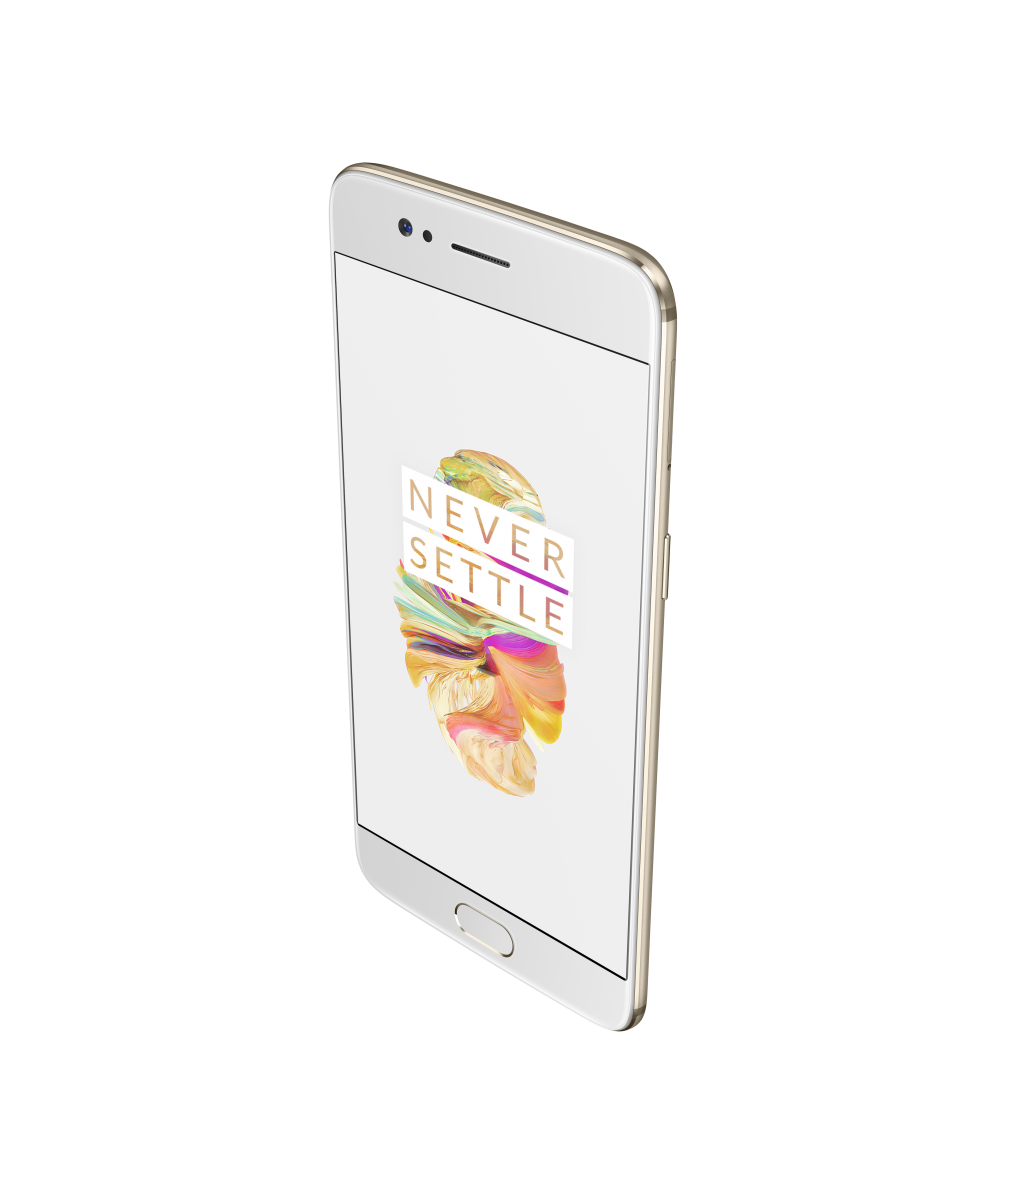 OnePlus 5 gets new Soft Gold color option